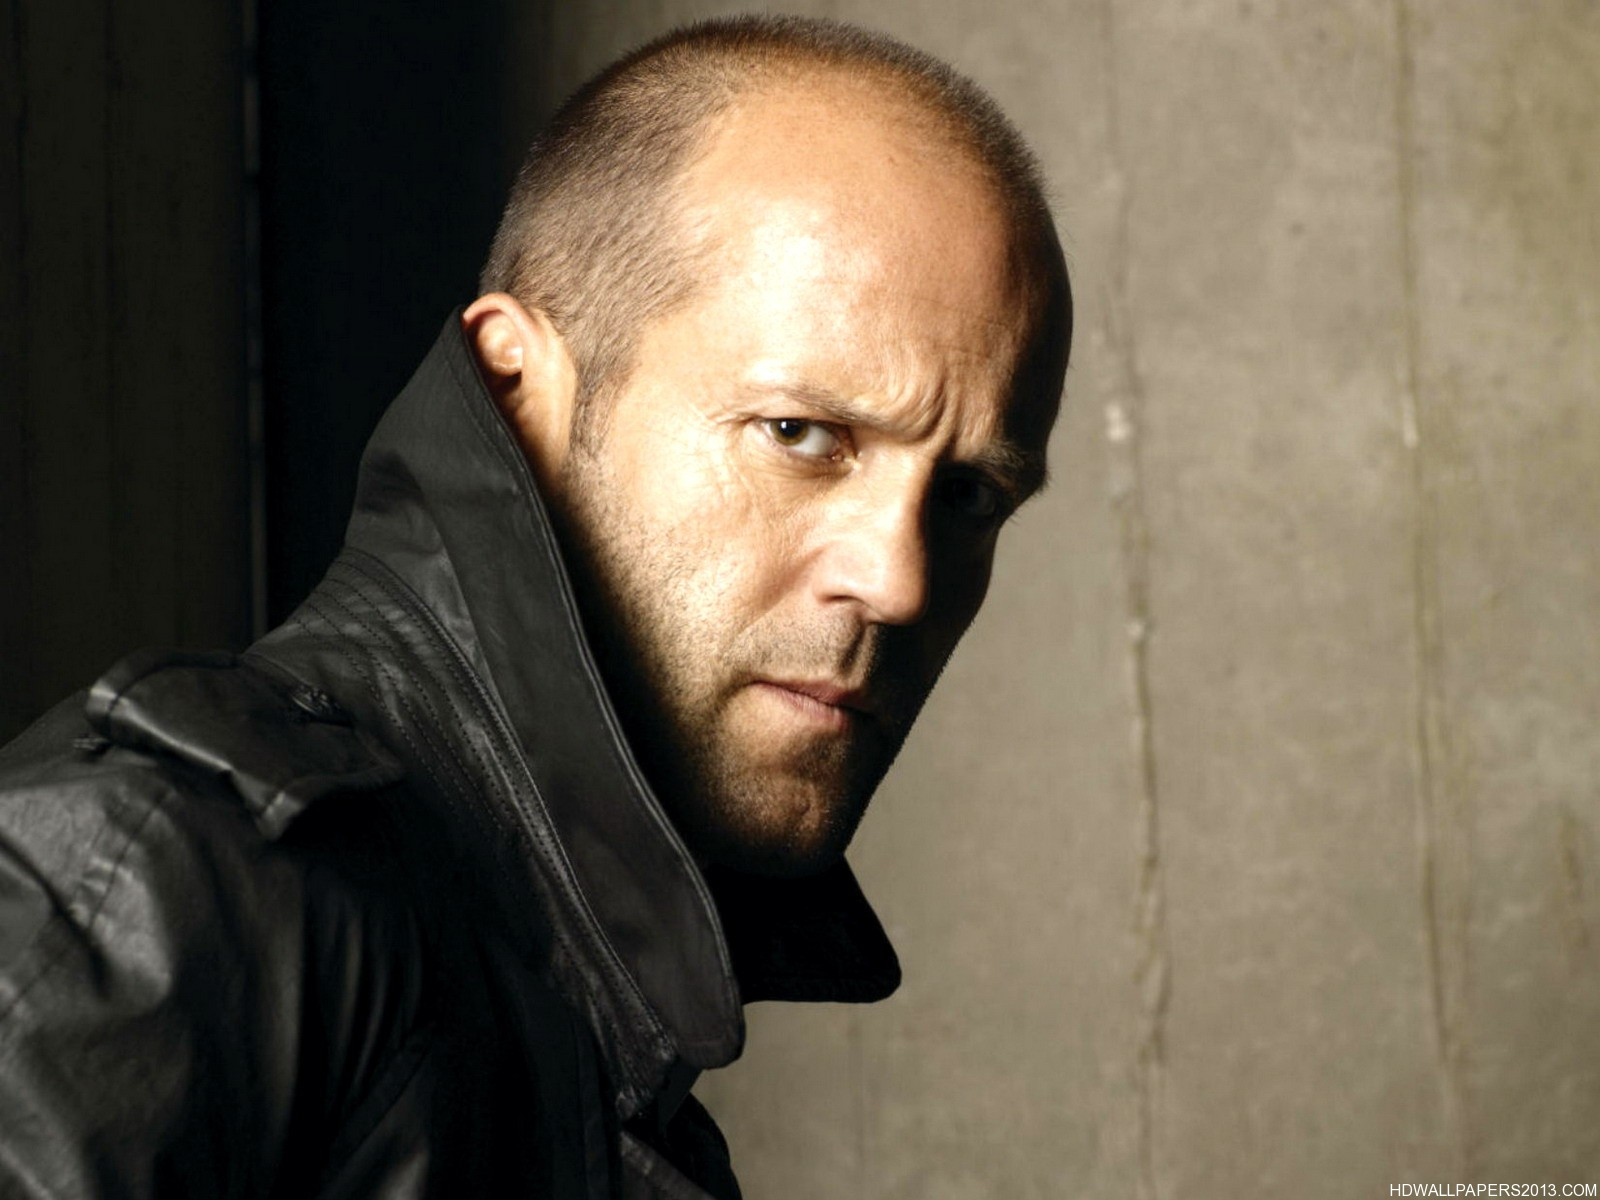 All shots of Jason Statham mounted in one video 08/26/2015 20